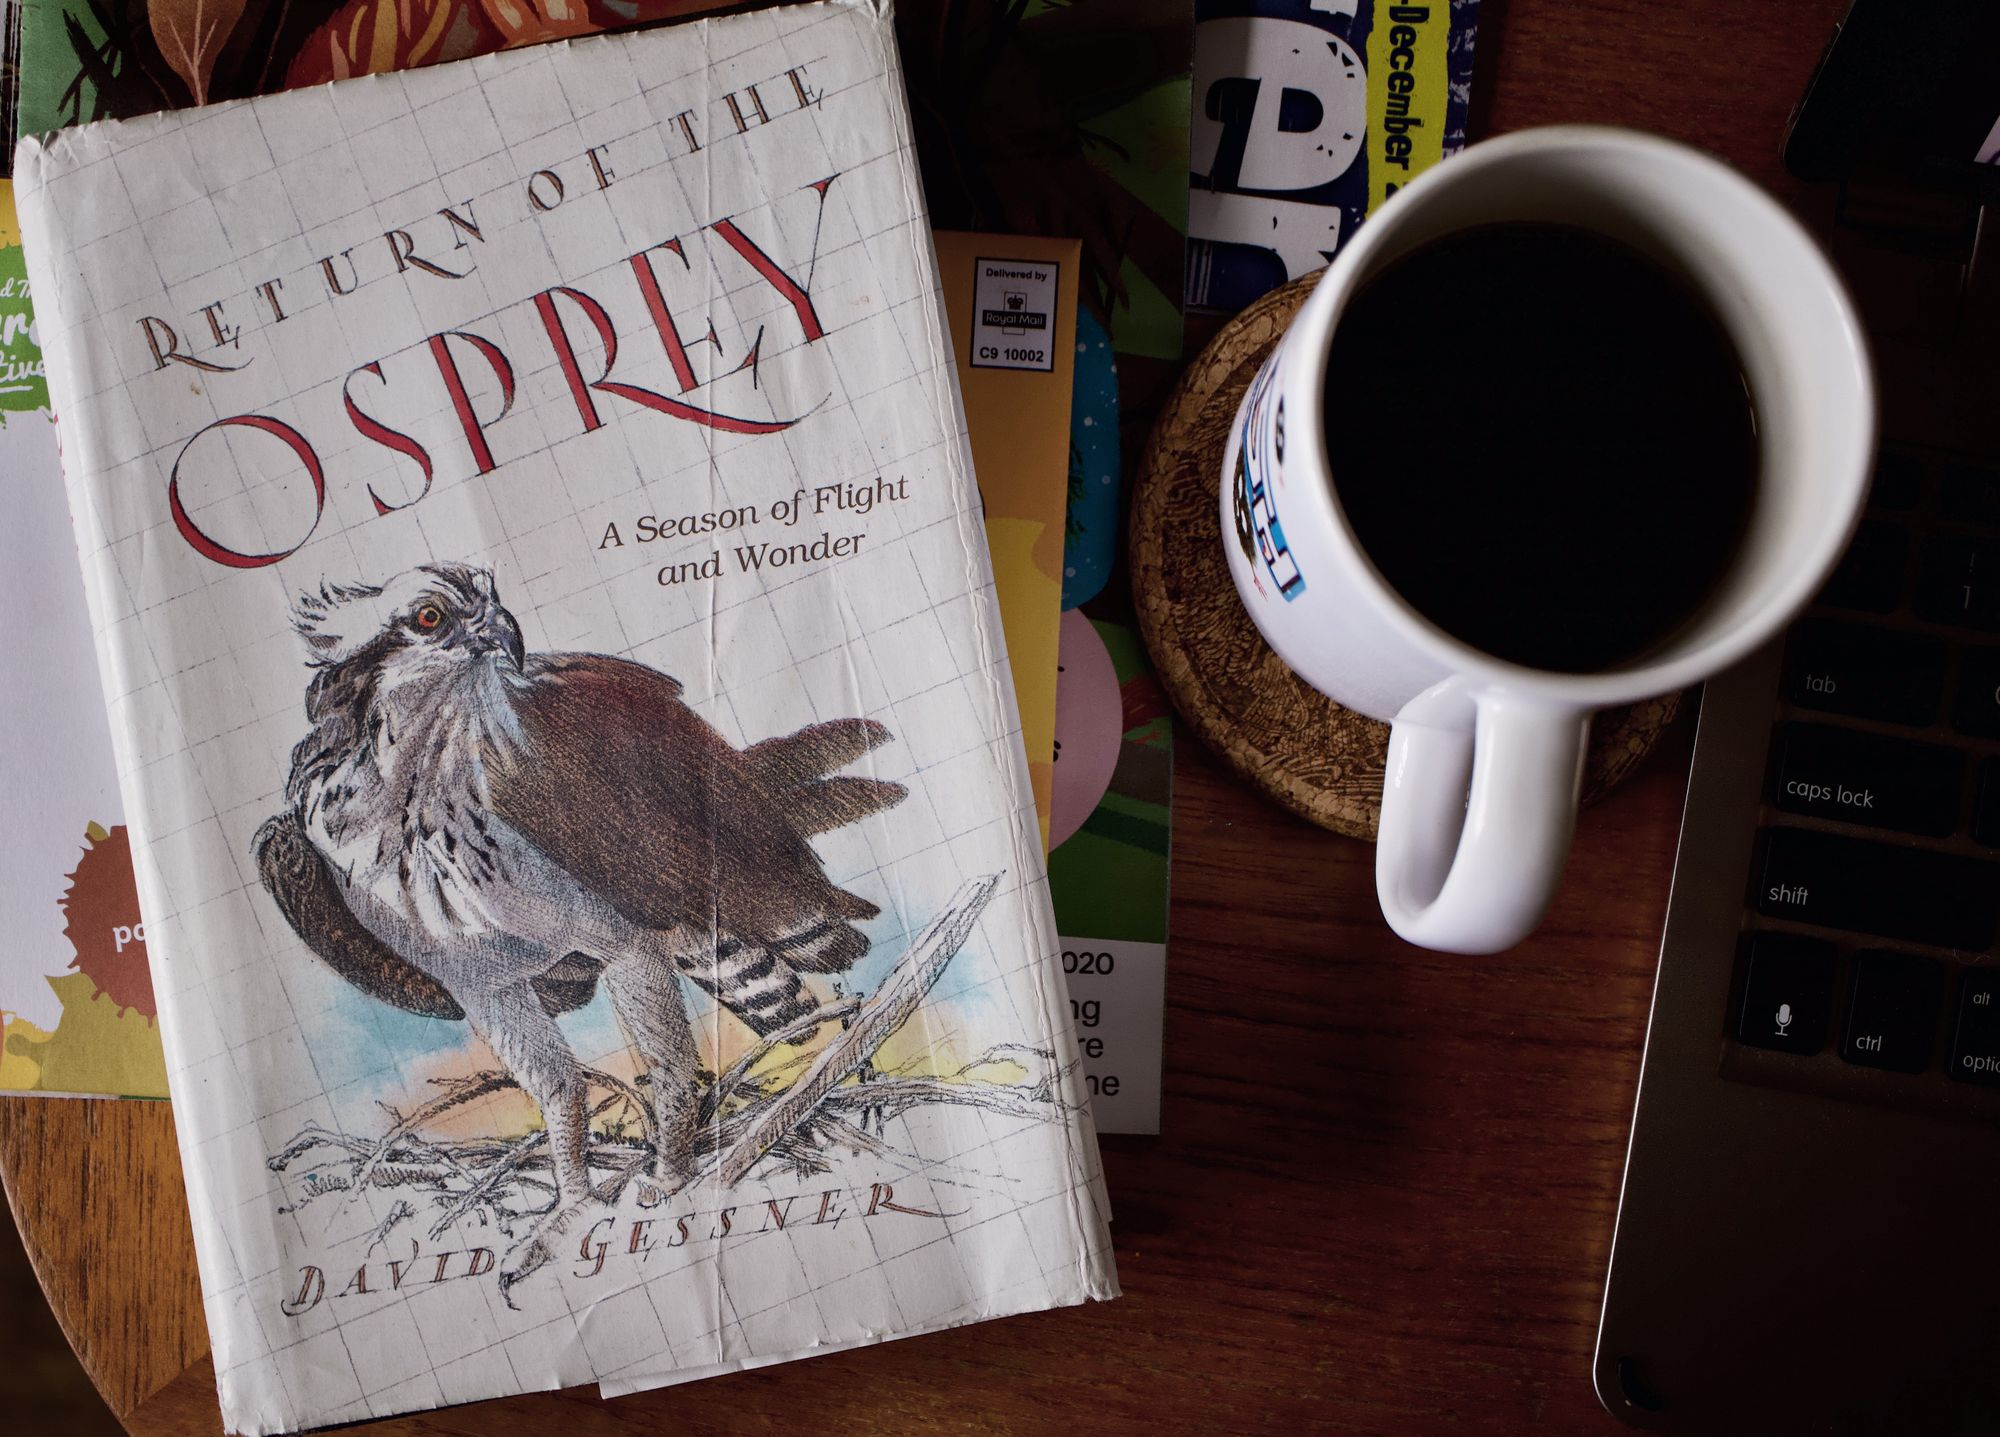 Review: Return of the Osprey by David Gassner